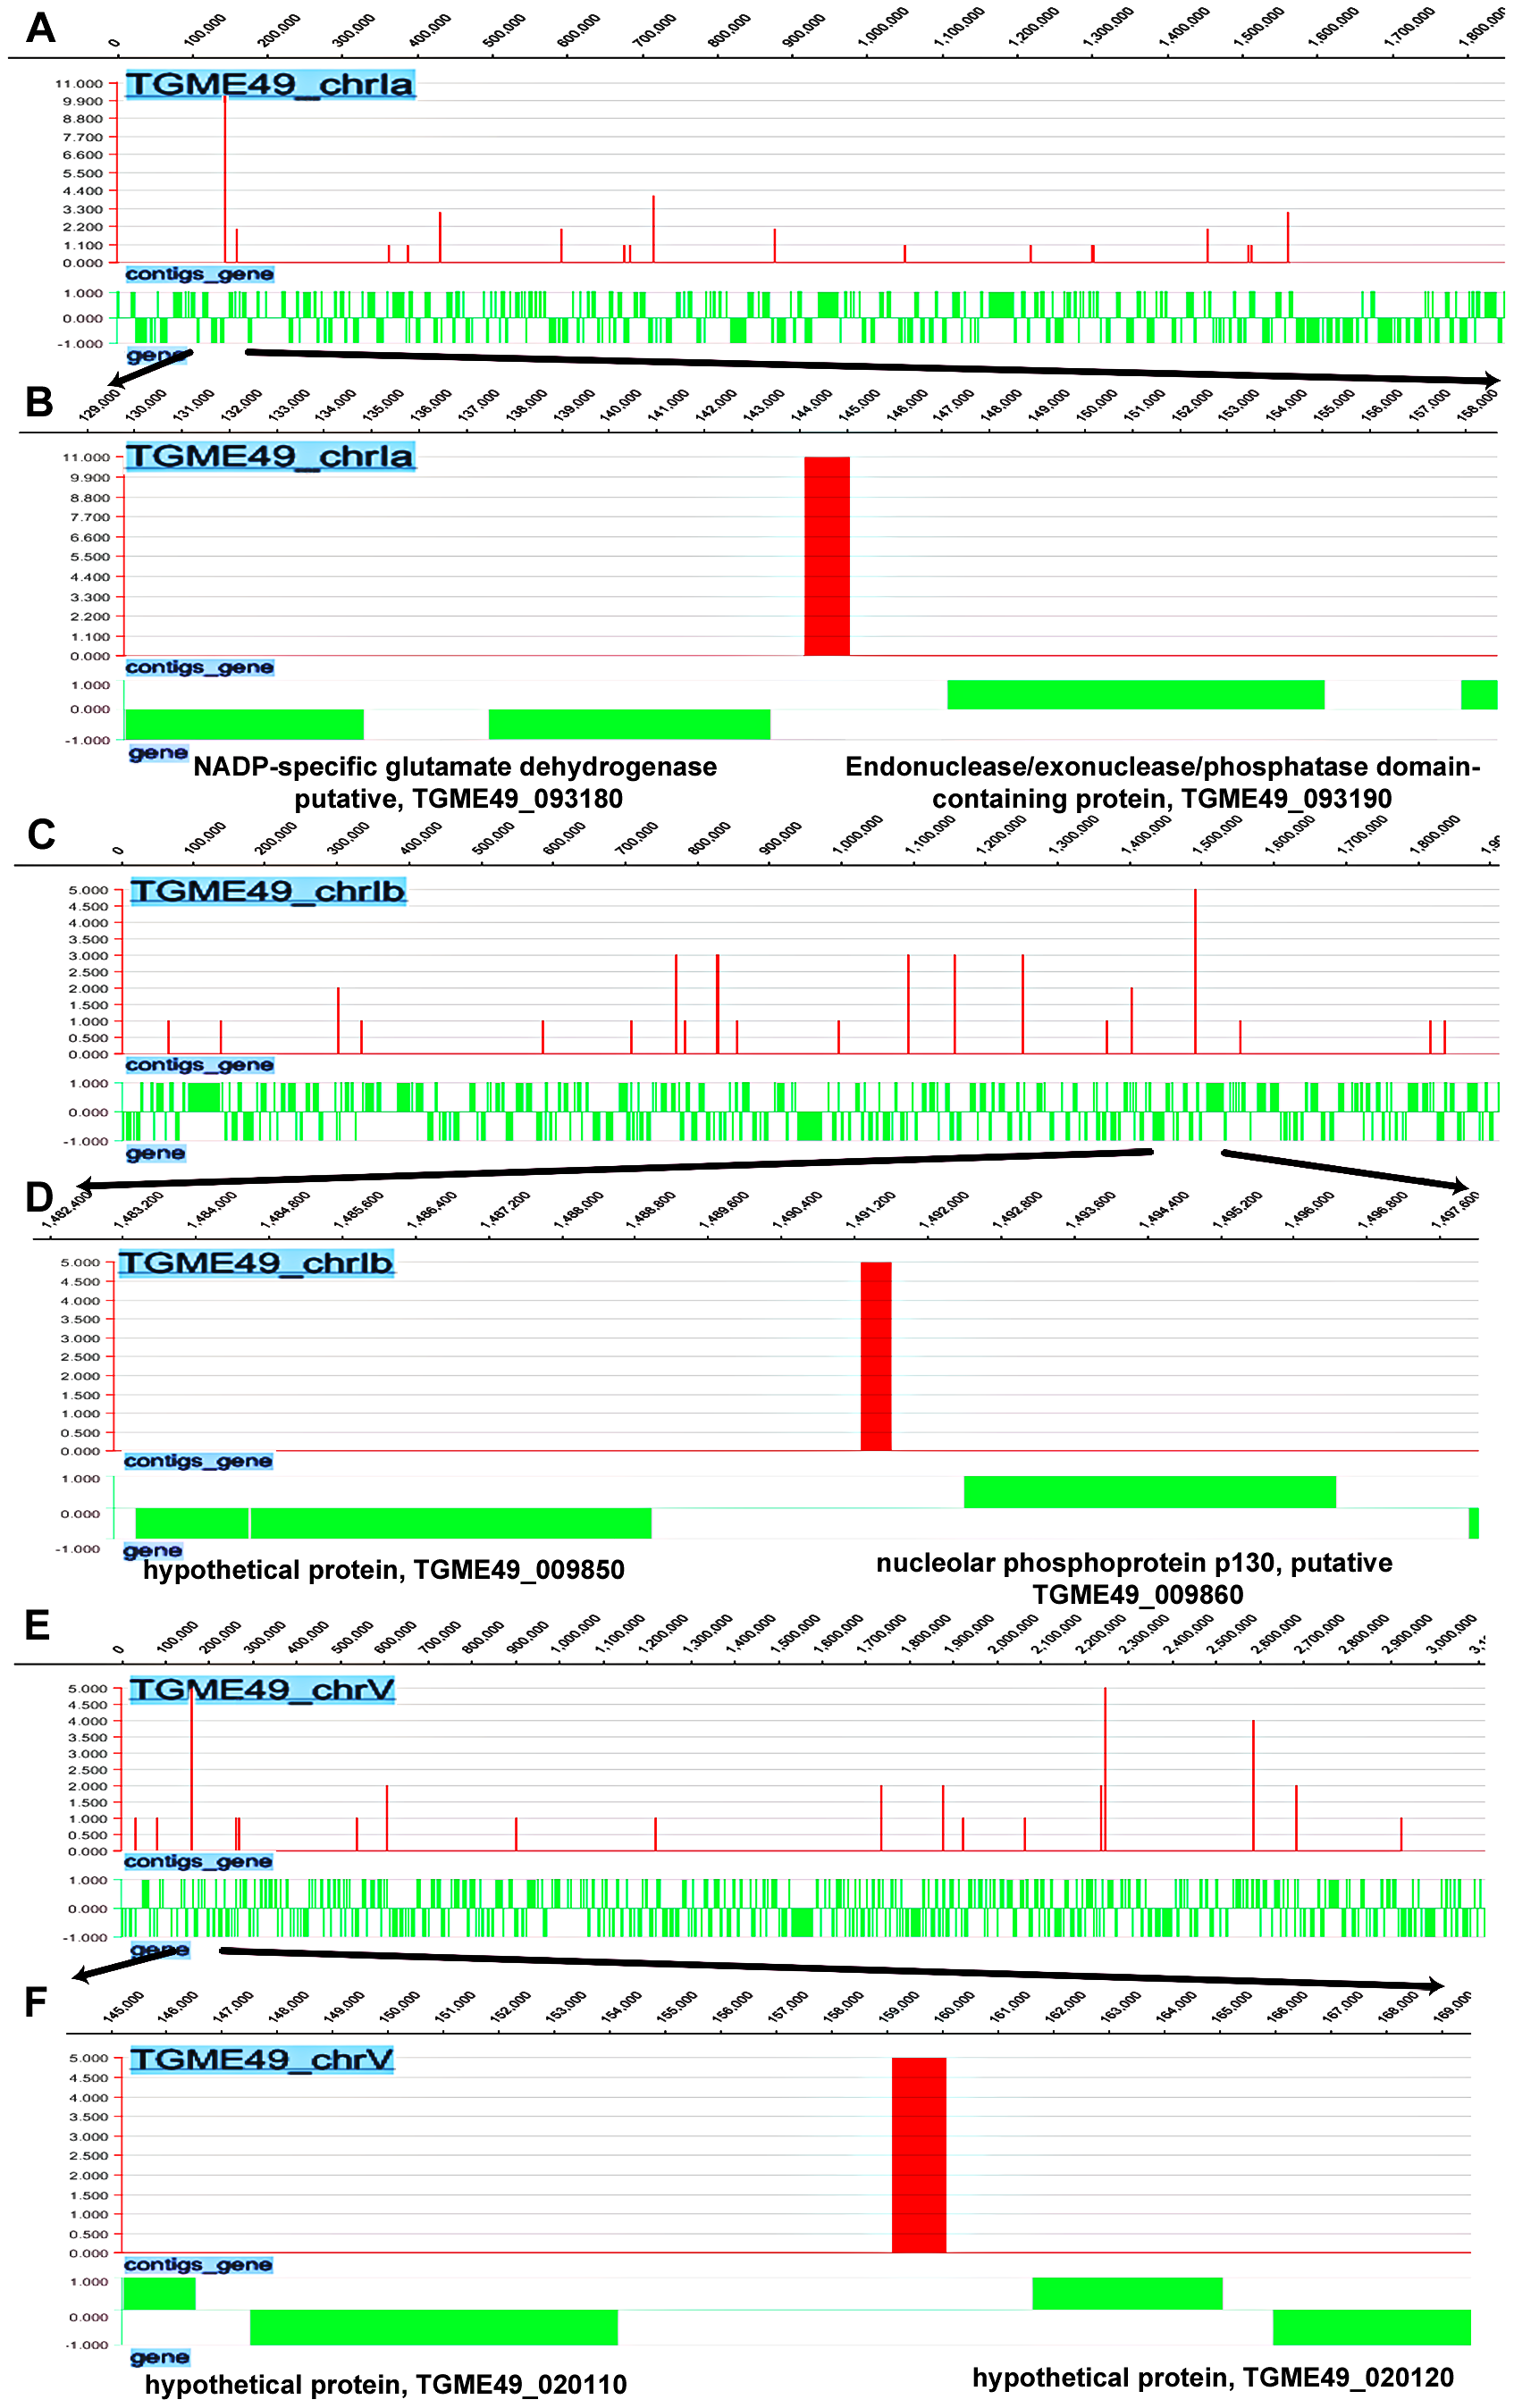 Genome-wide TgNF3 occupancy of gene promoters by ChIP-seq.